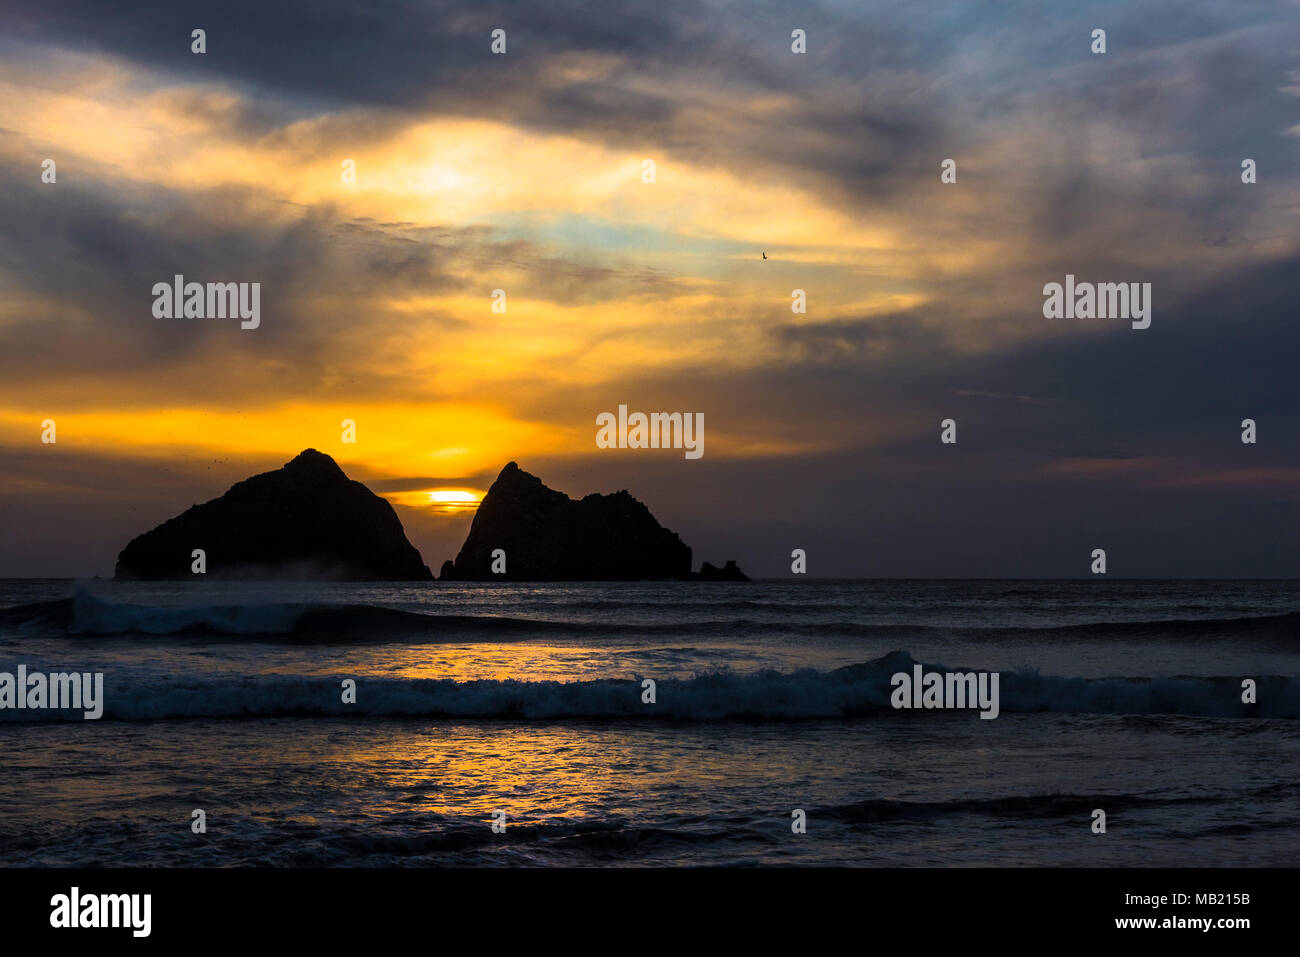 Holywell Bay, Cornwall, UK. 5th April 2018. UK weather - A beautiful sunset over the iconic Carter's Rocks at a deserted Holywell Bay in Cornwall.. Credit: Gordon Scammell/Alamy Live News - Stock Image